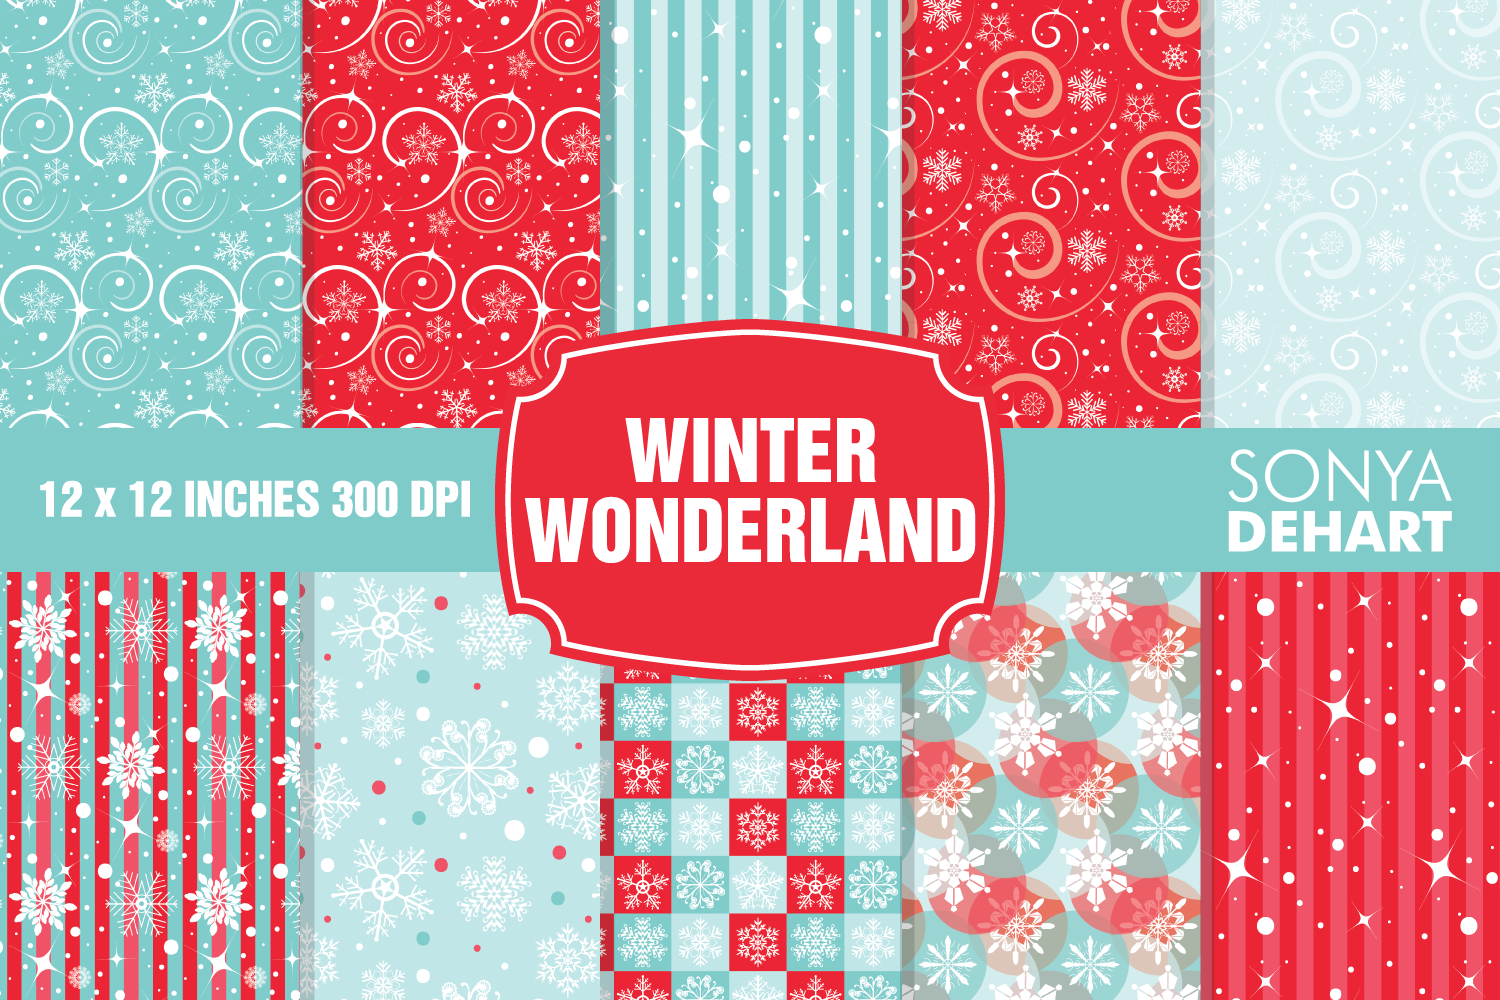 Winter Wonderland Christmas Digital Paper Pattern Pack example image 1